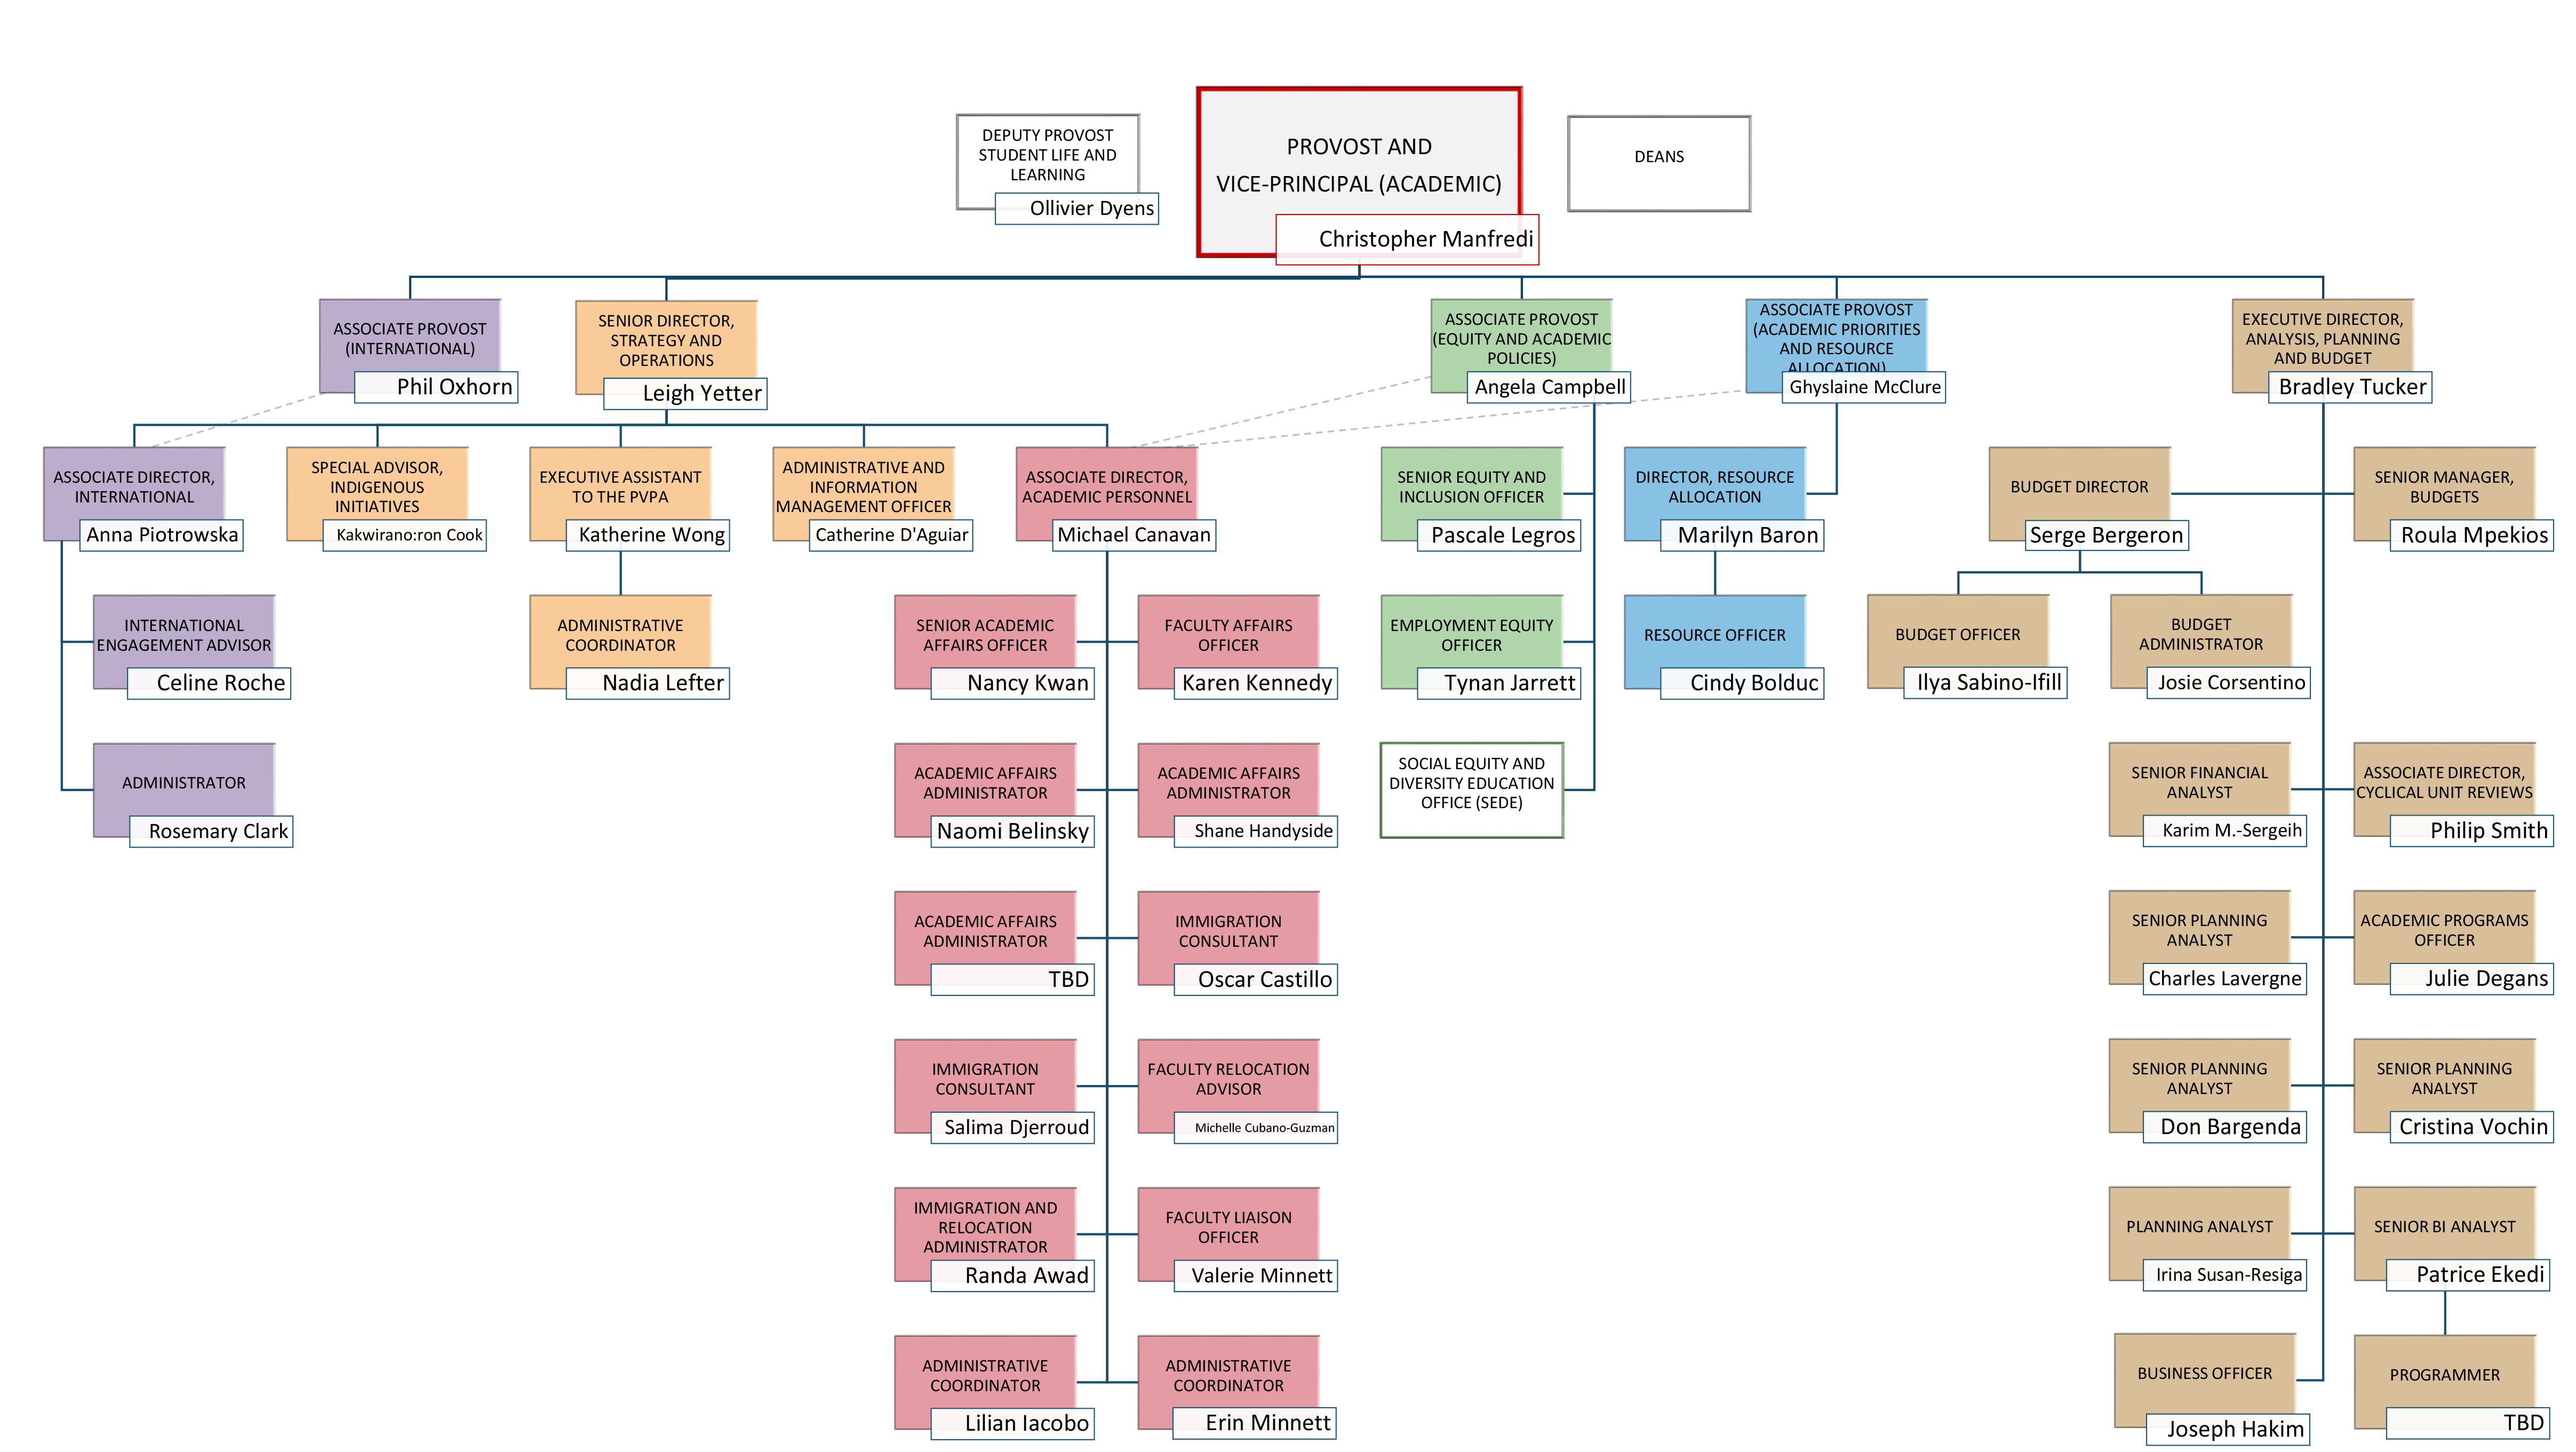 Organizational chart for the Office of the Provost and Vice-Principal (Academic)